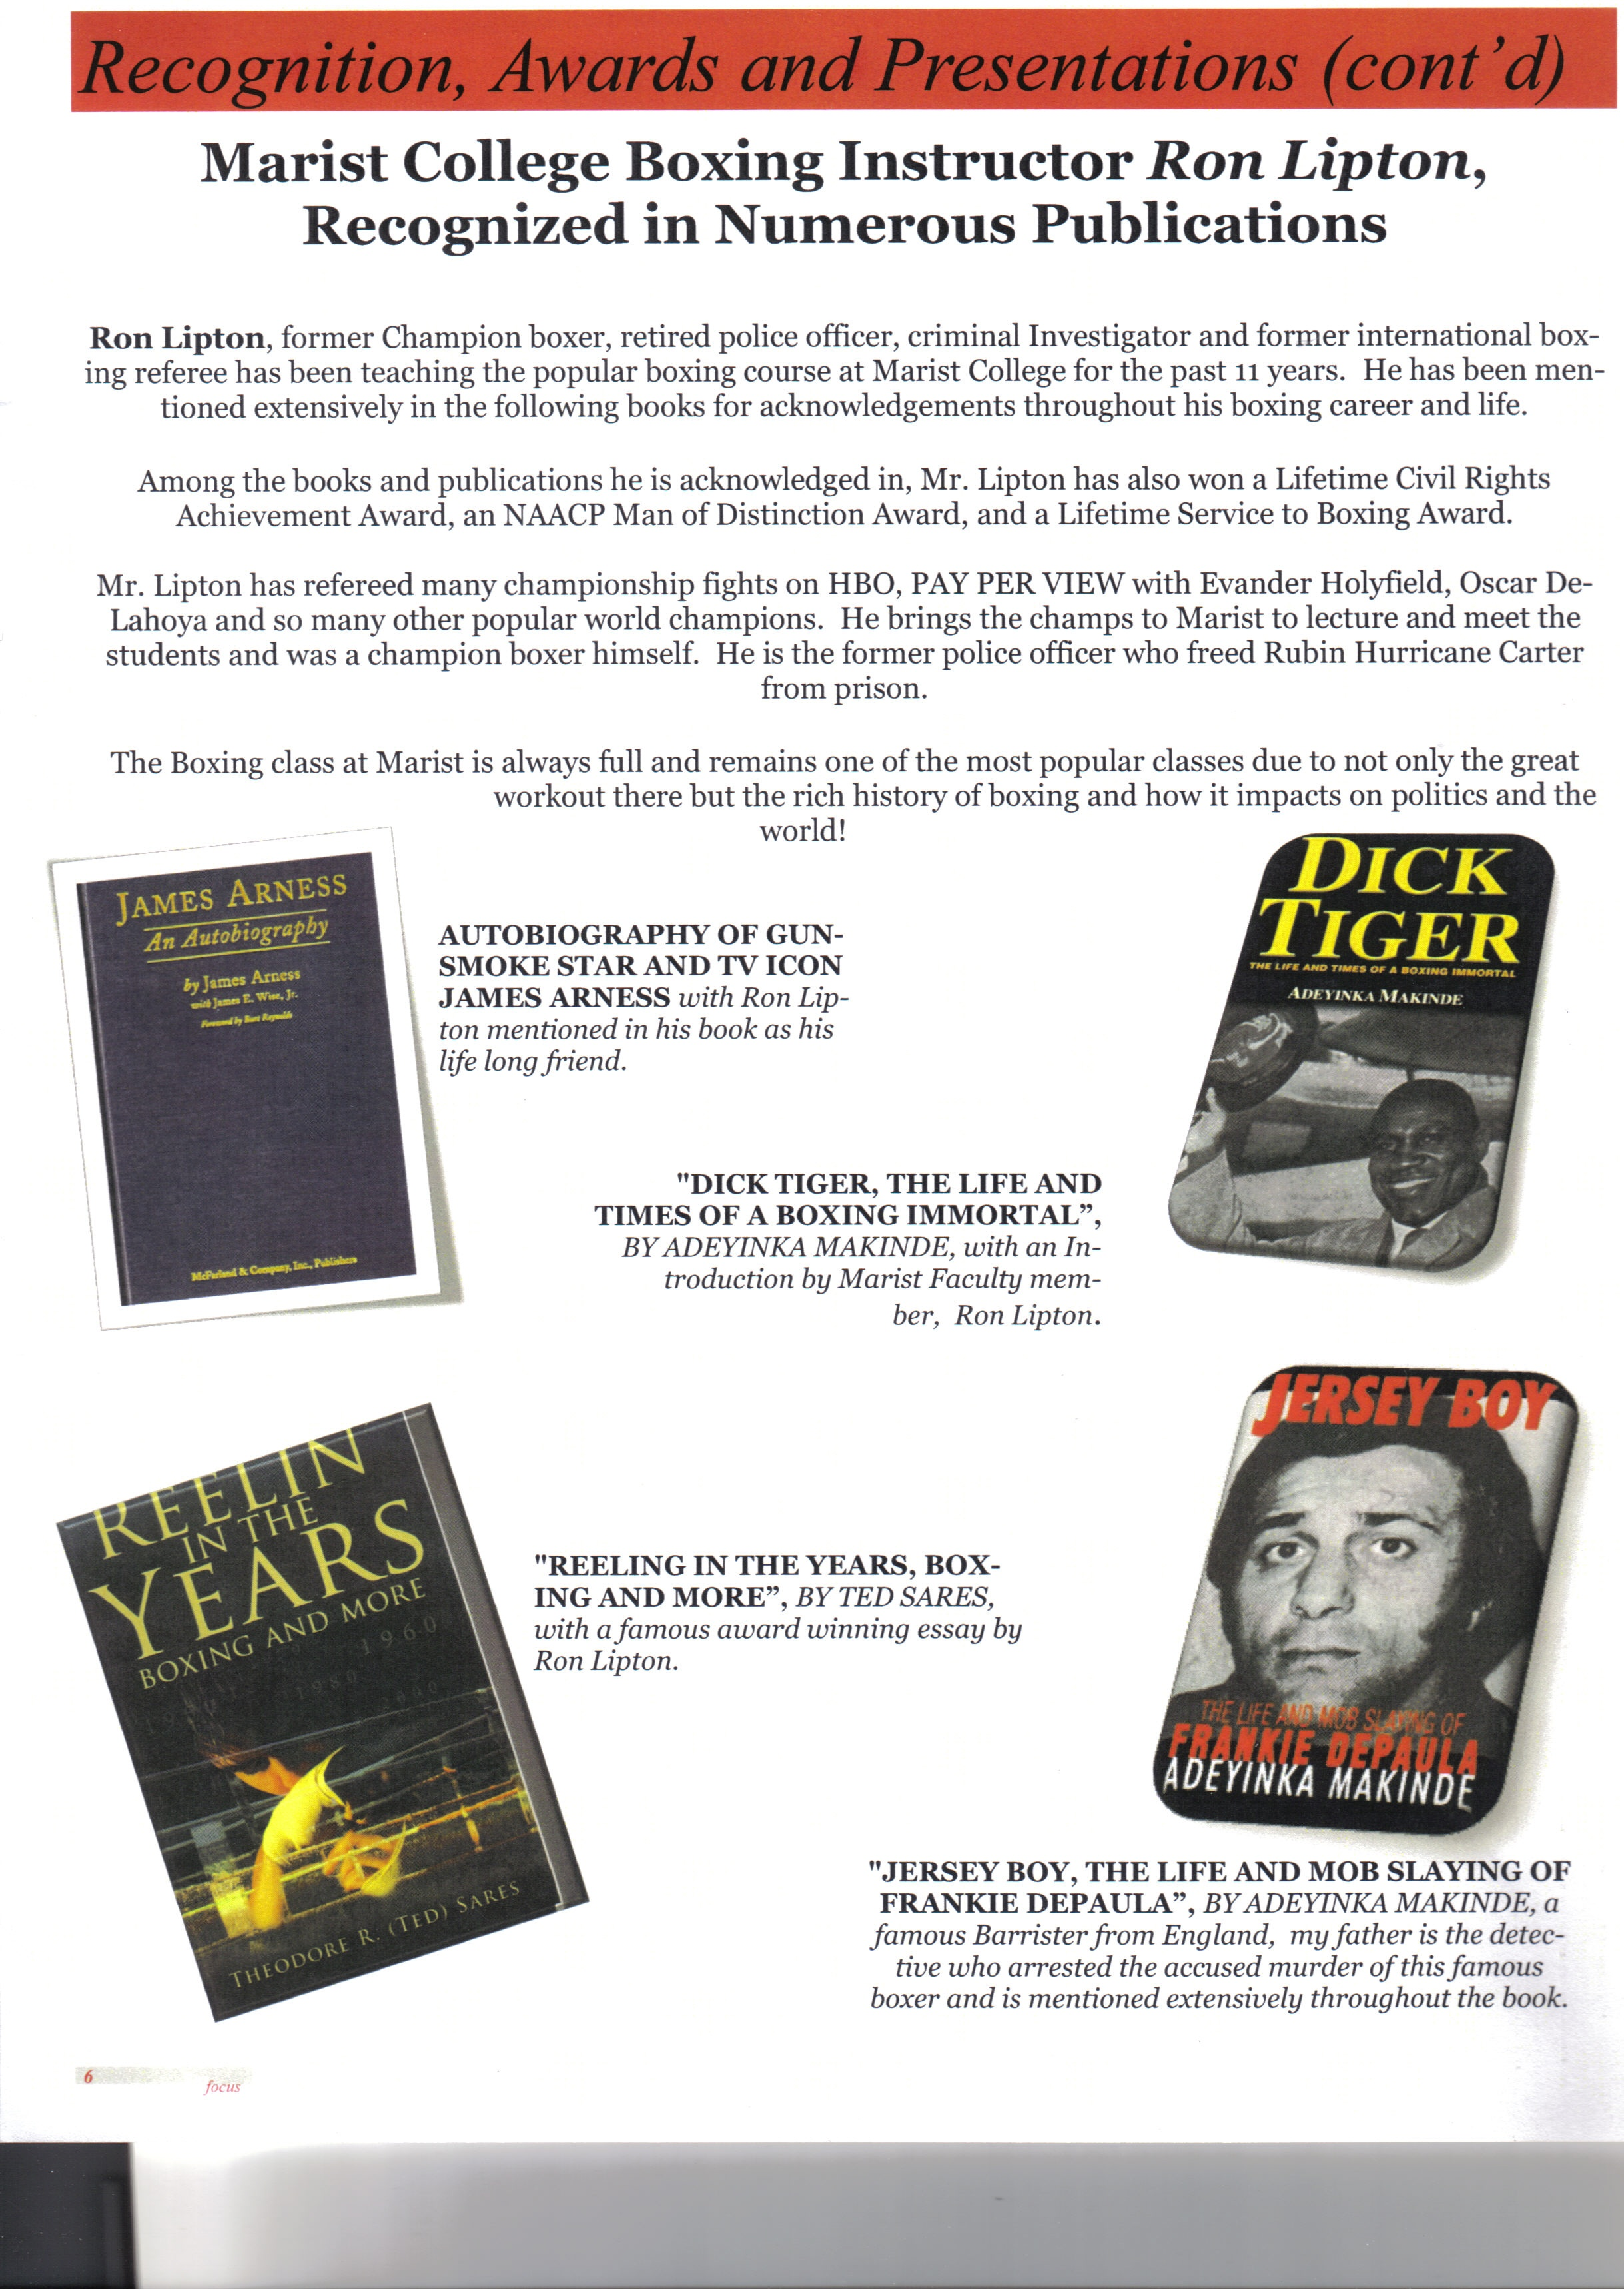 COLOR BOOK PICTURES OF RON'S WRITINGS.jpg